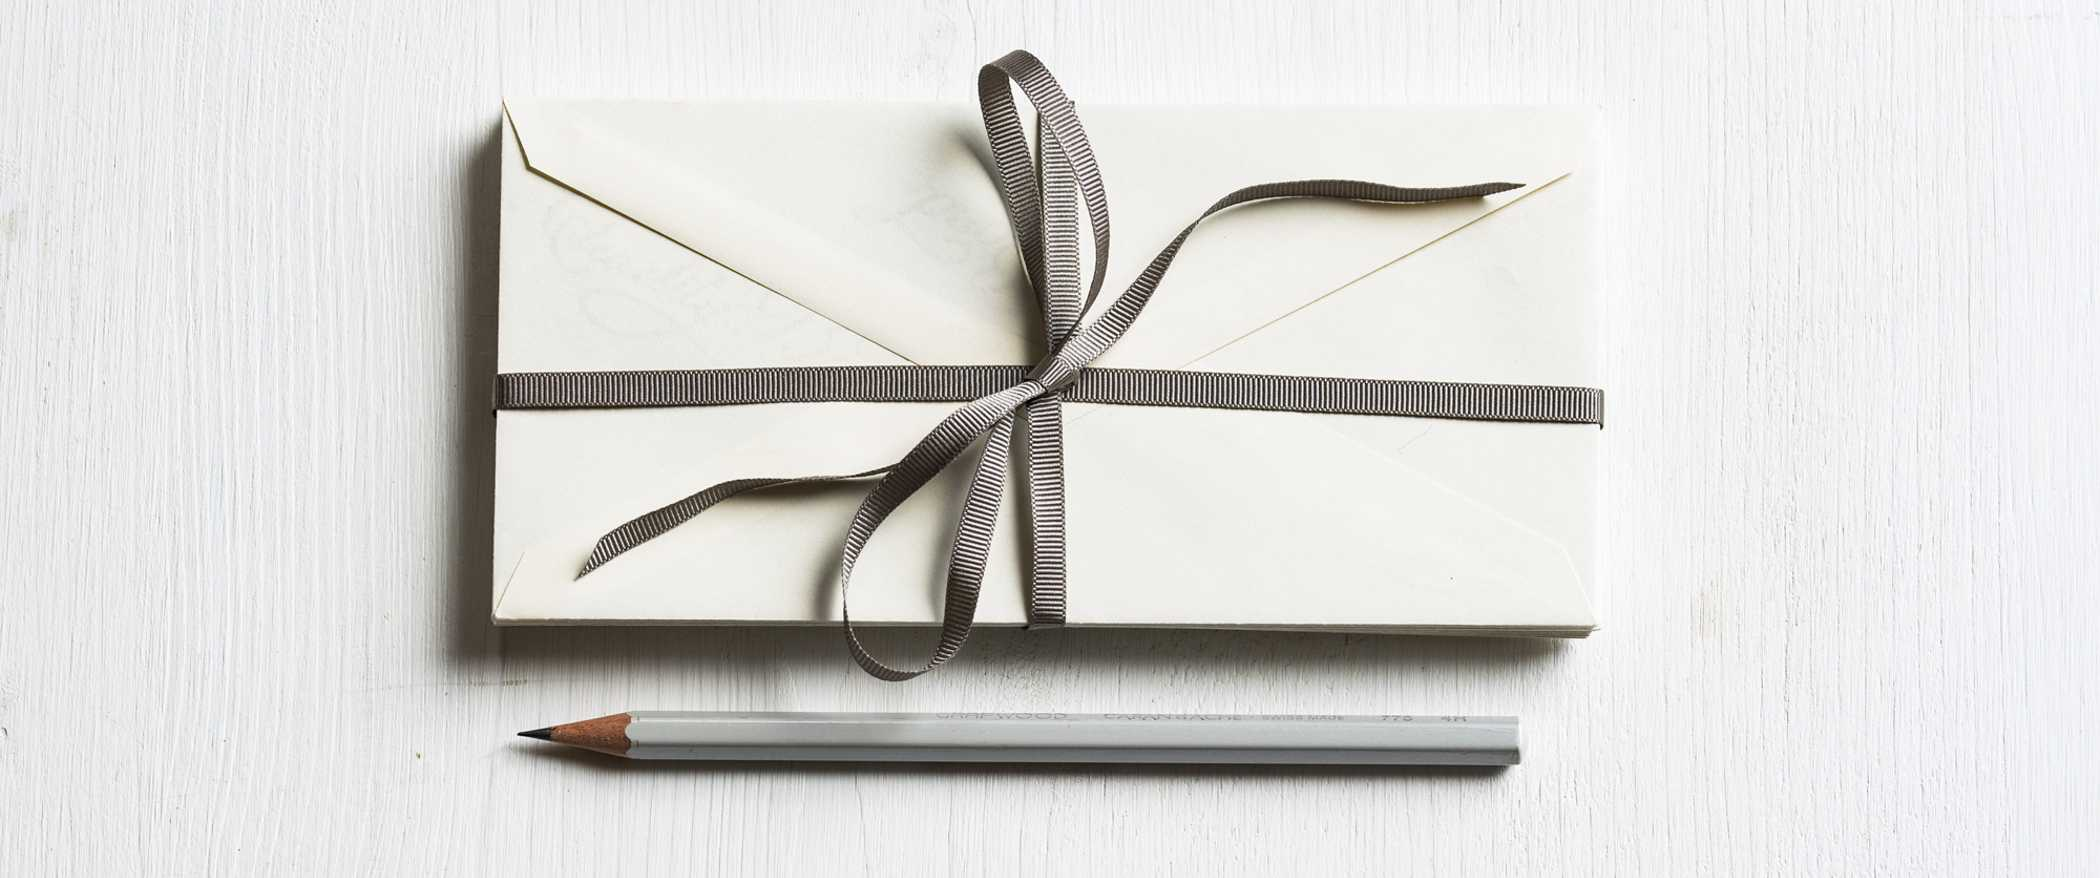 5 Client Gift Ideas Better Than Corporate Branded Items